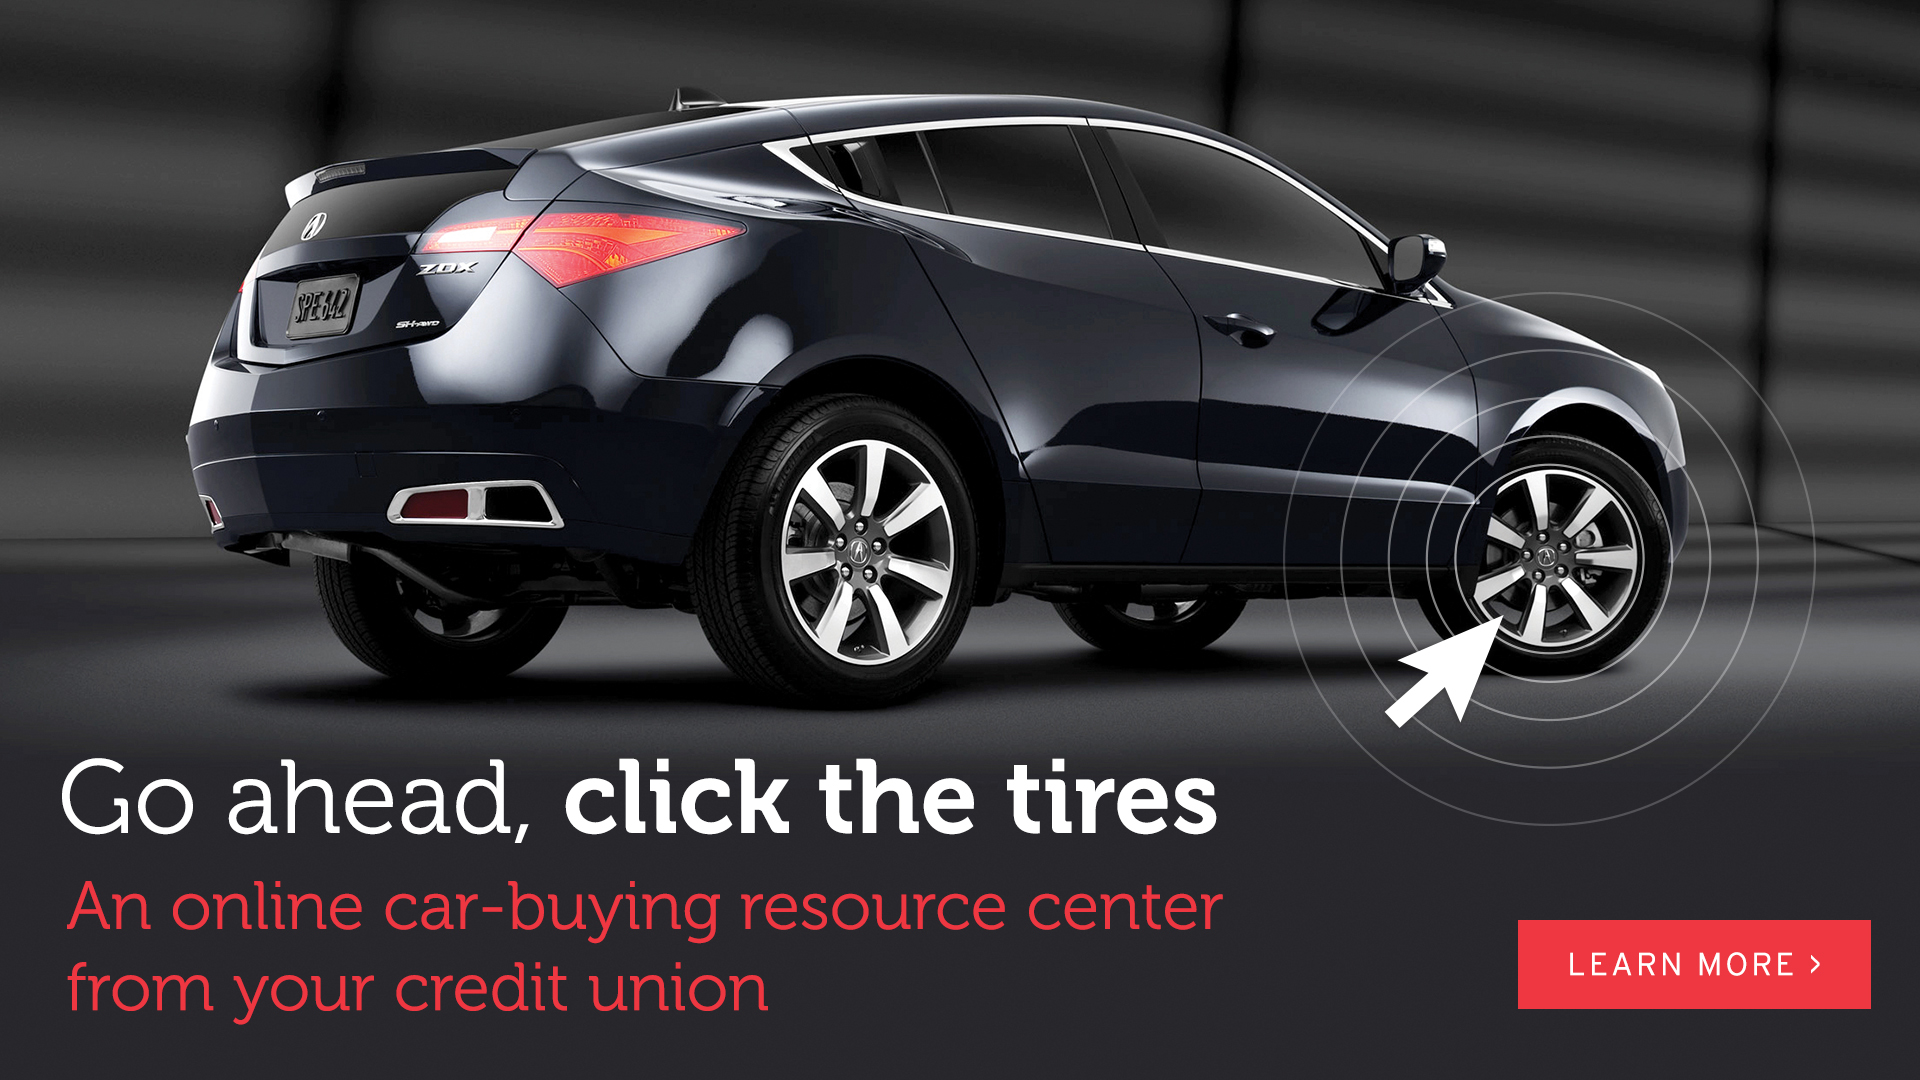 Online car buying resource from your credit union.